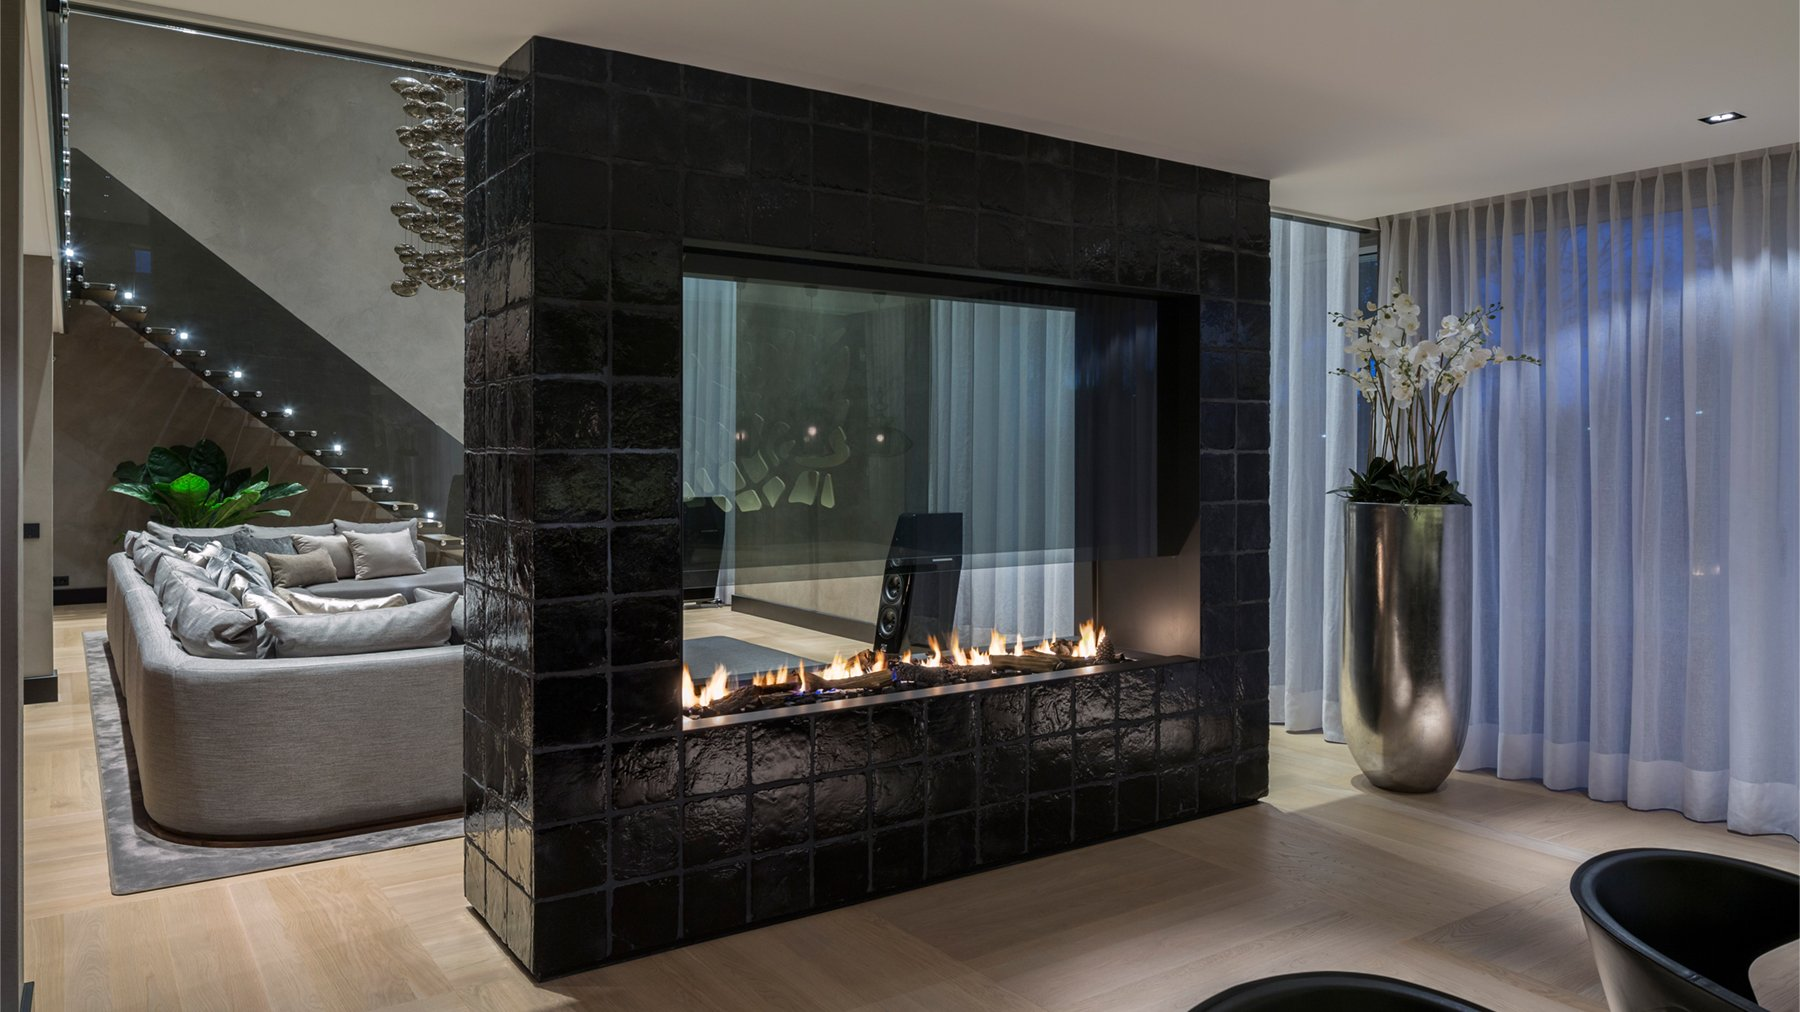 Contemporary fireplaces i designer fireplaces i luxury for Luxury fireplace designs